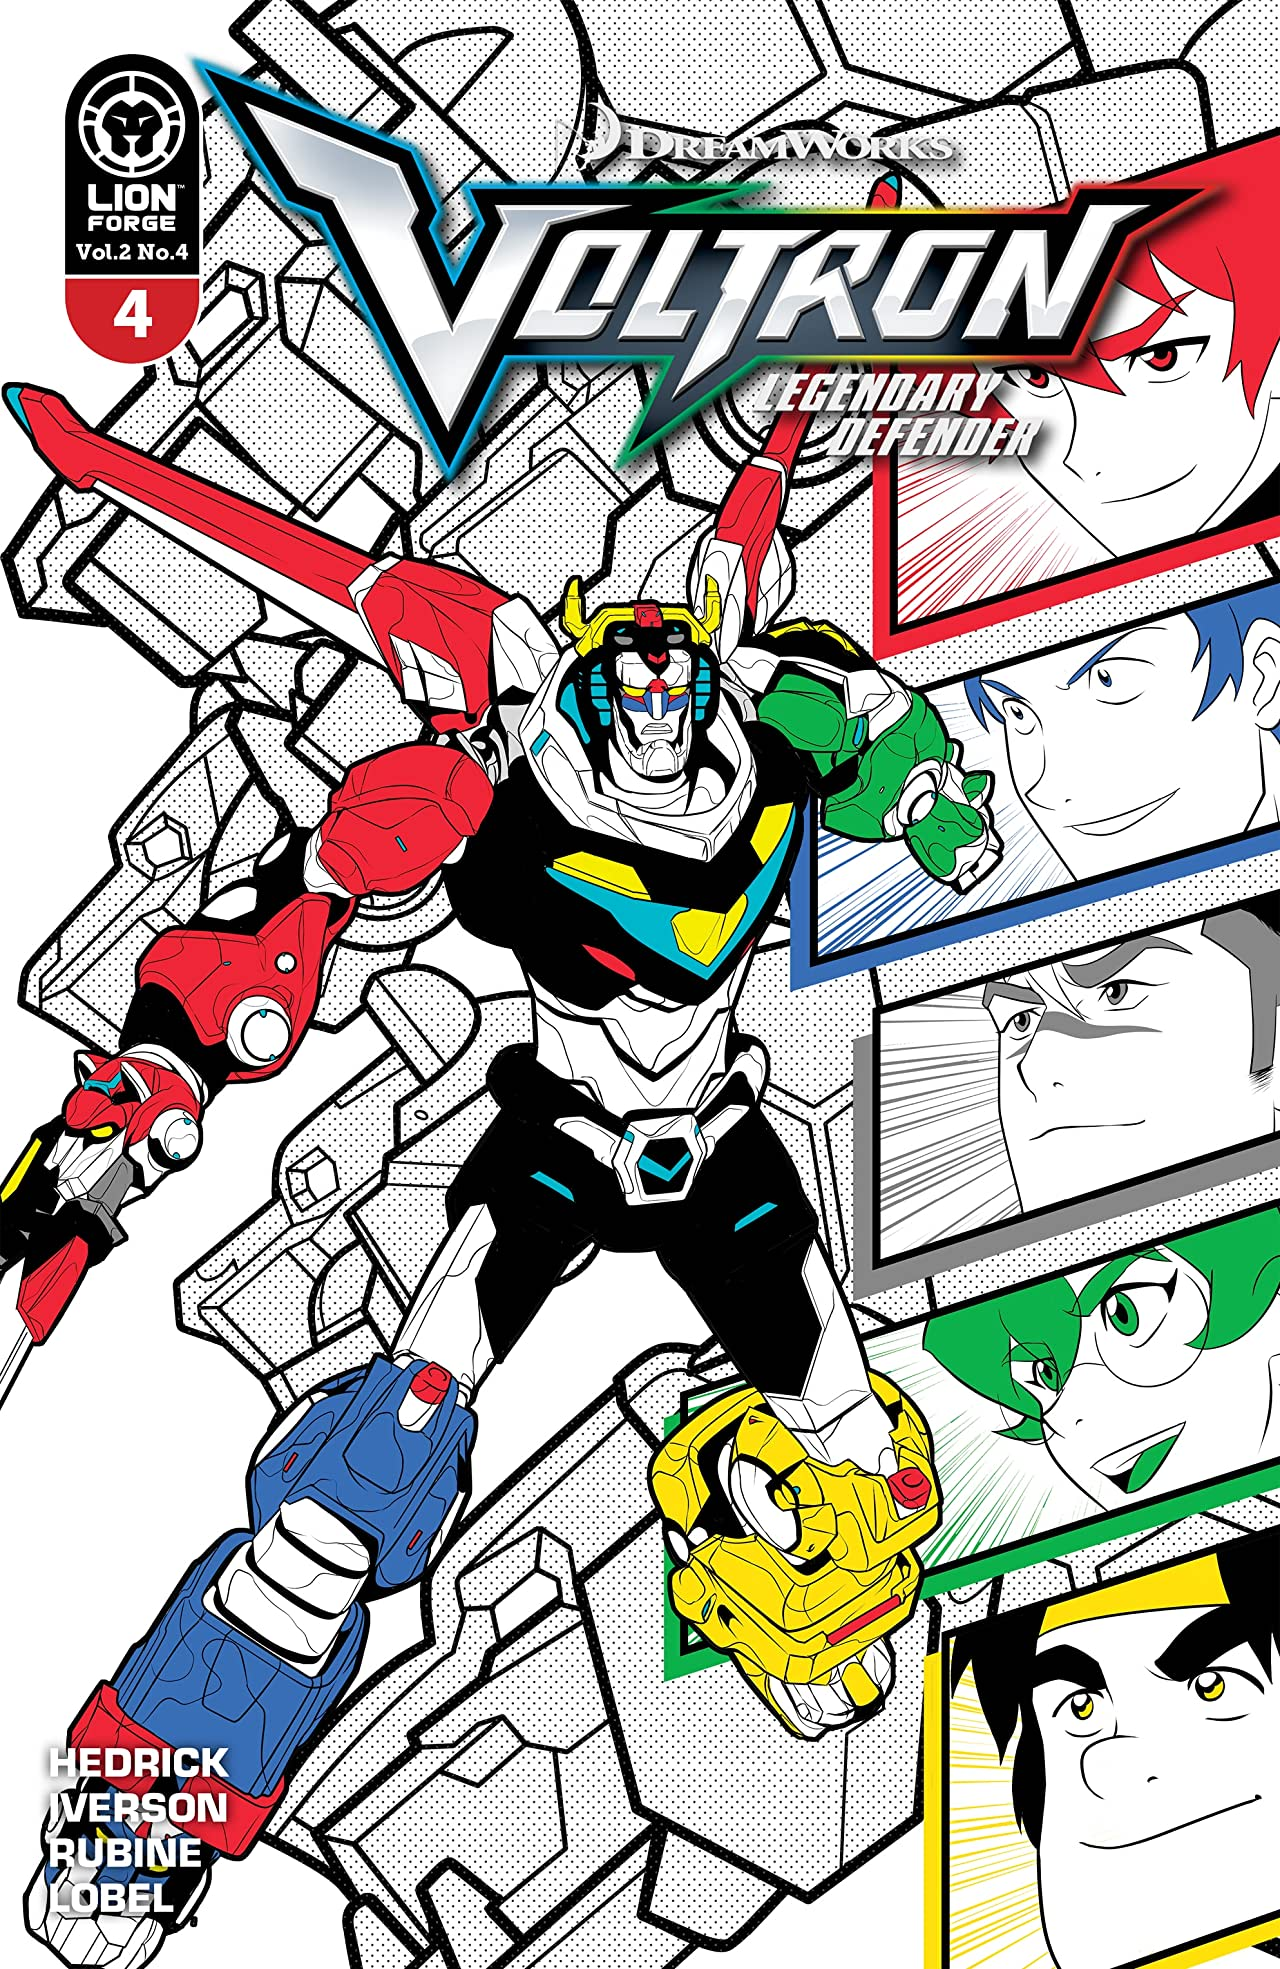 Voltron: Legendary Defender Vol. 2 #4